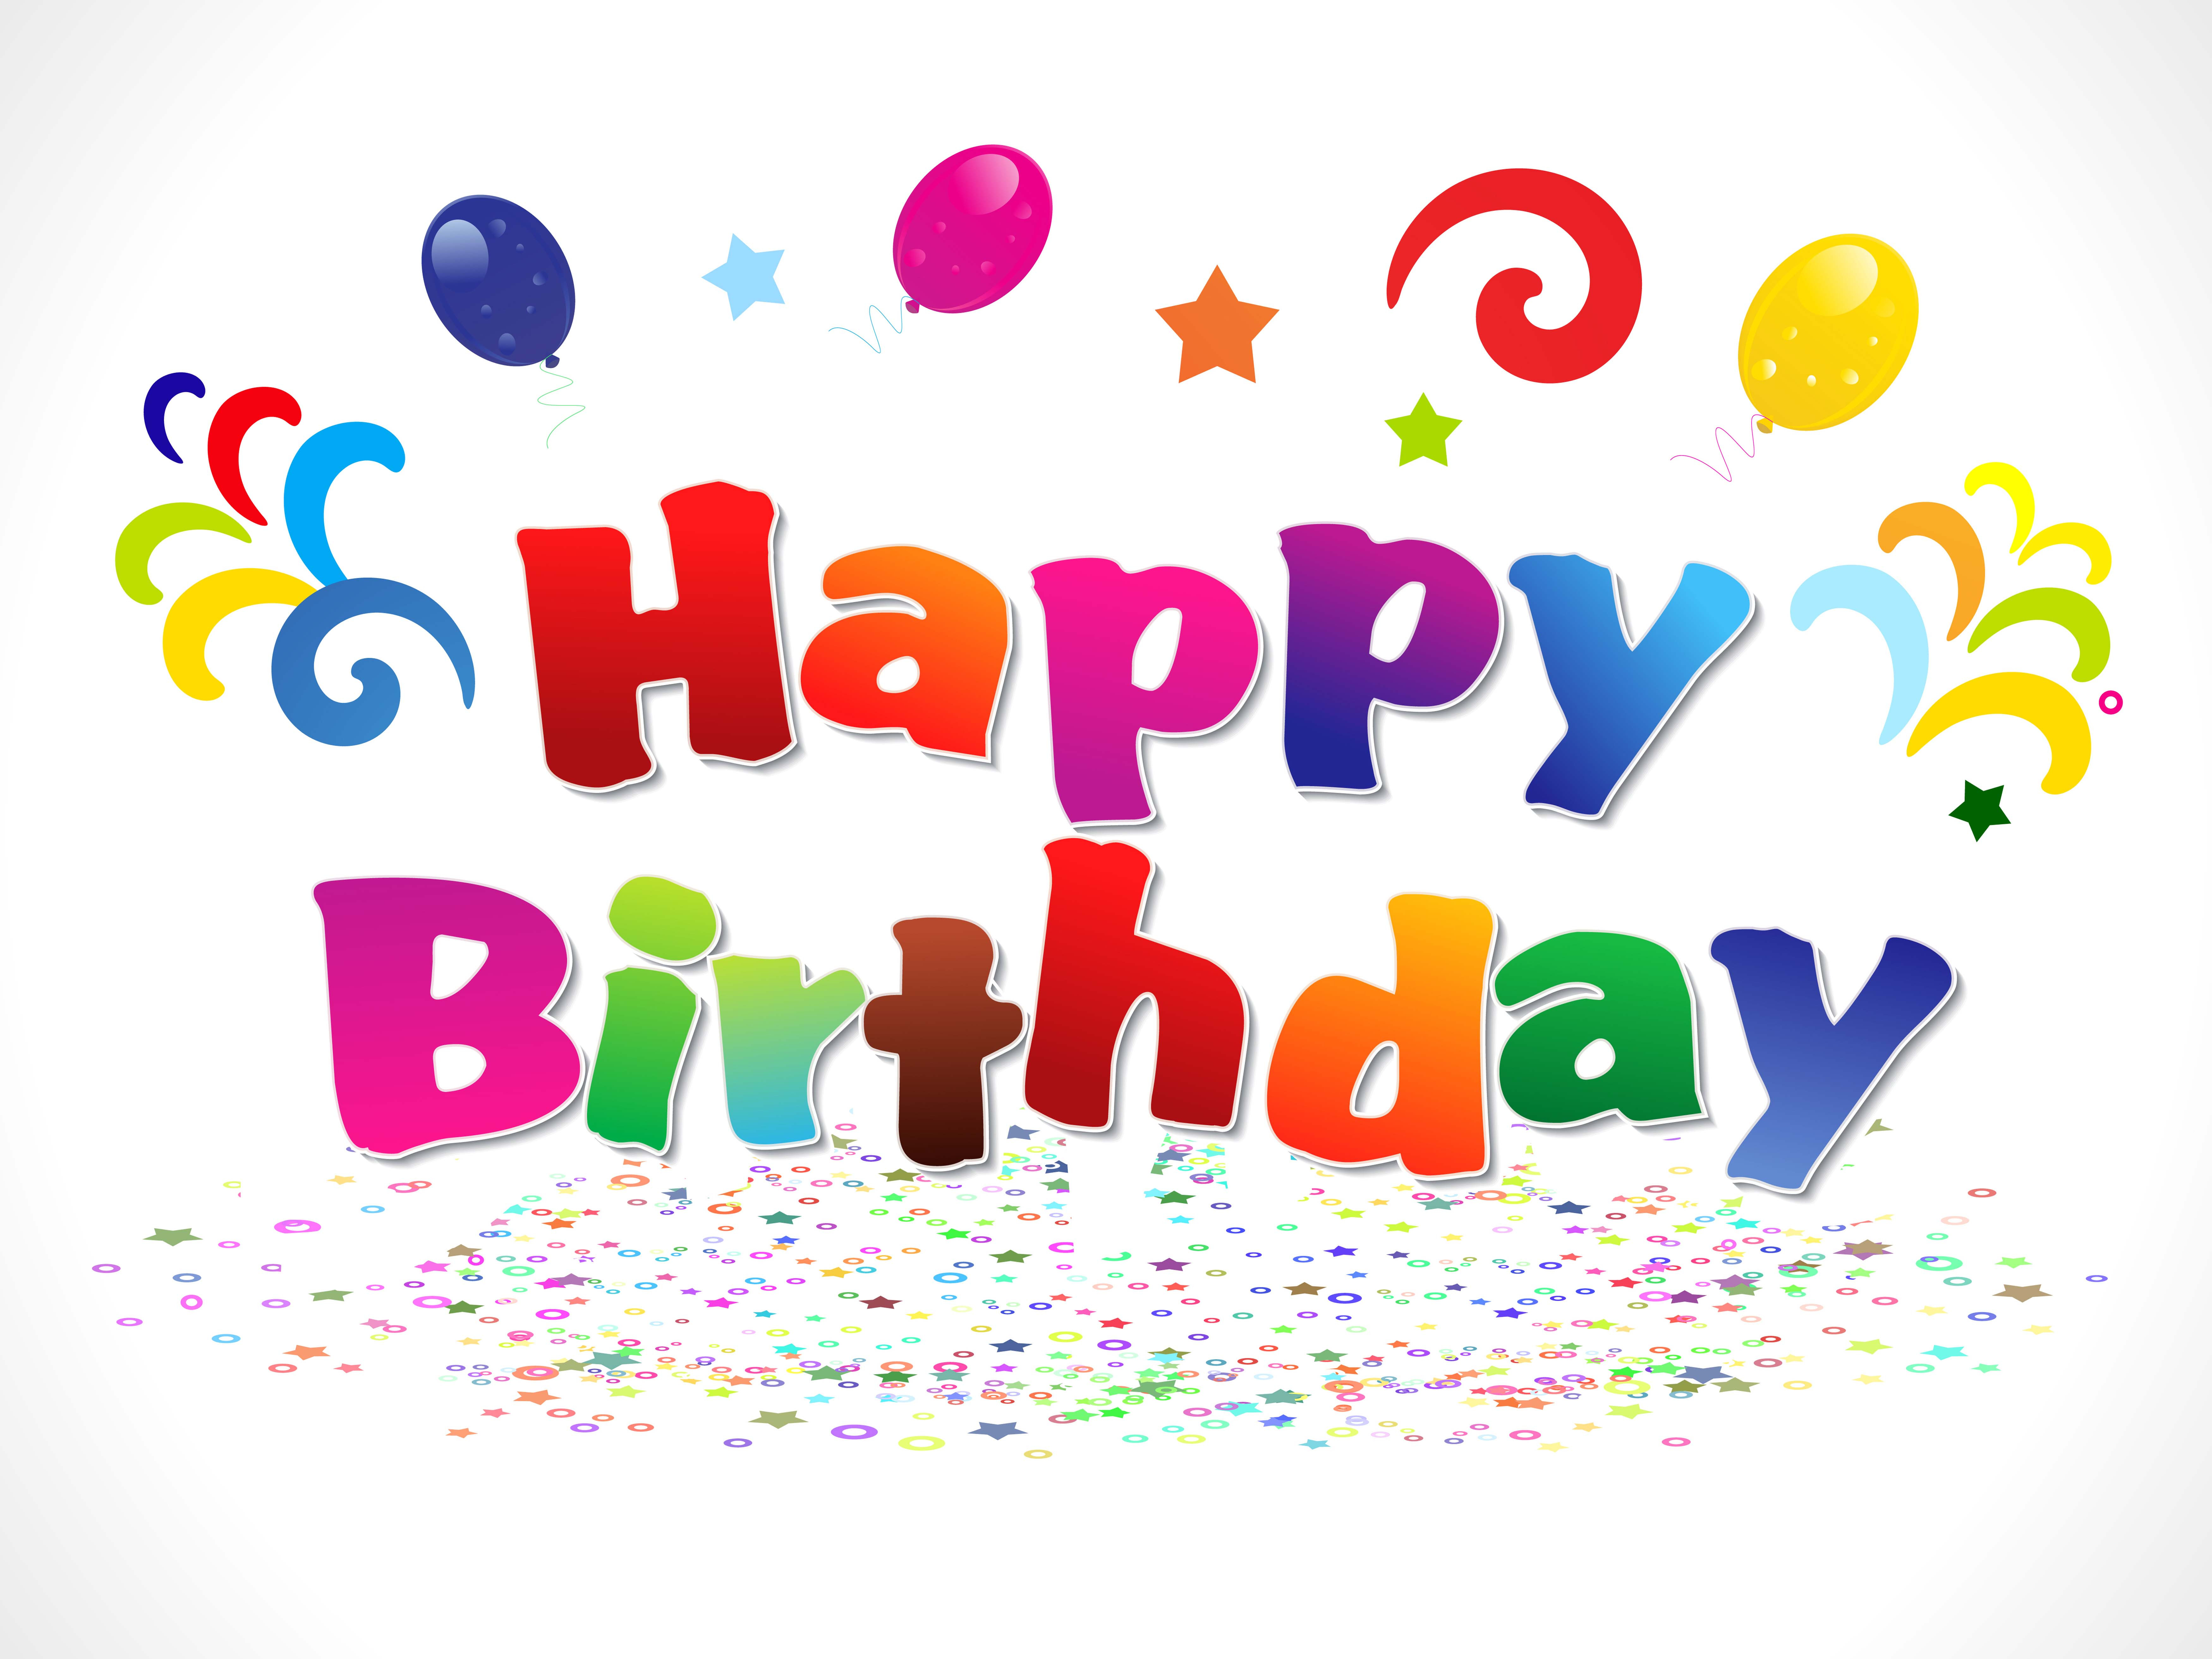 Best ideas about Thoughtful Birthday Wishes . Save or Pin The Collection of Sincere and Thoughtful Birthday Wishes Now.